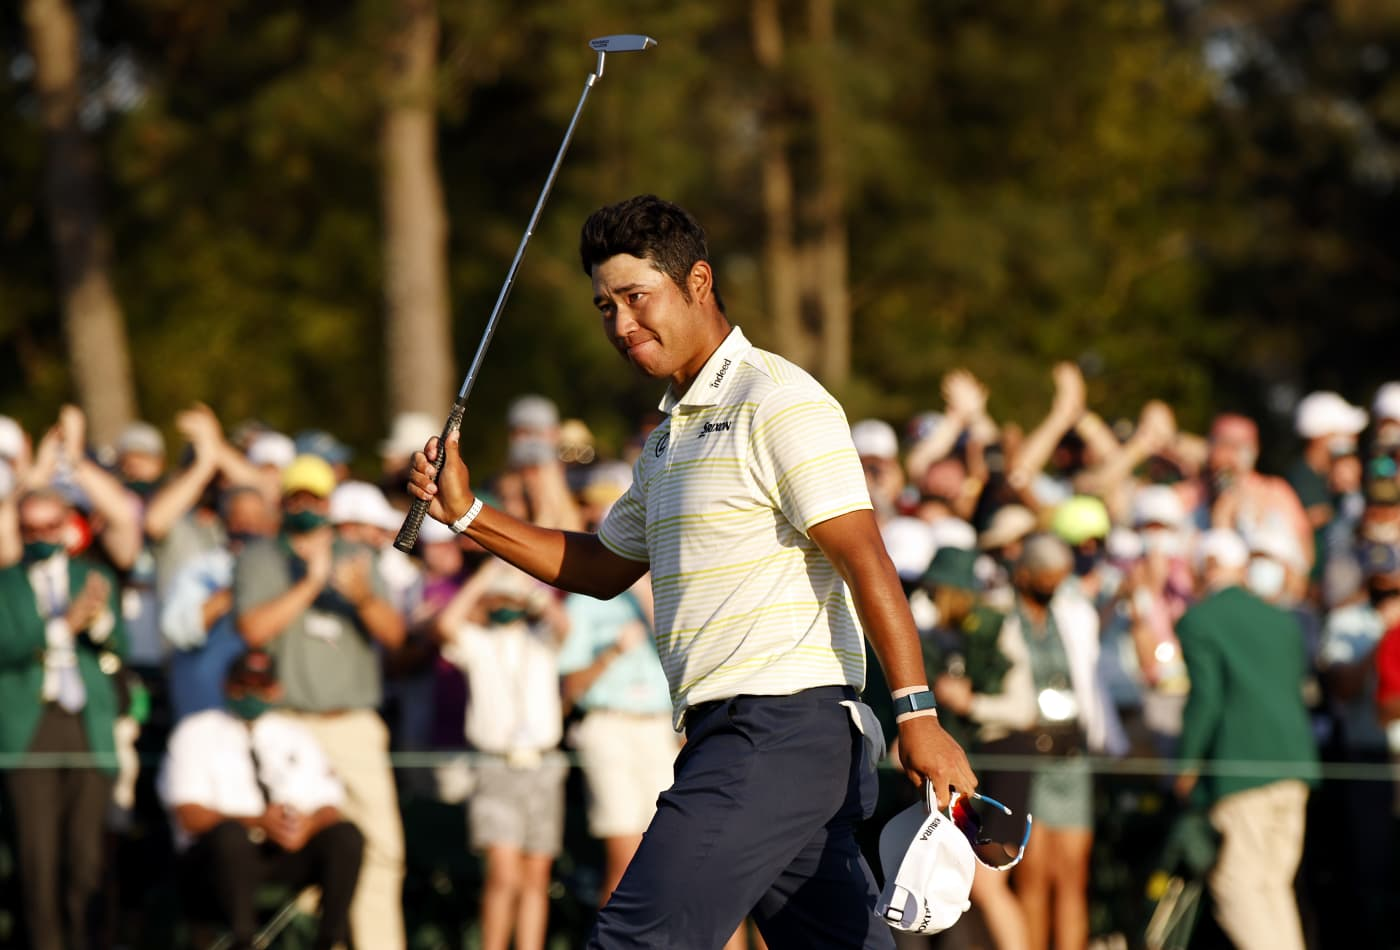 The Masters: Hideki Matsuyama survives late mistakes to win first men's major for Japan